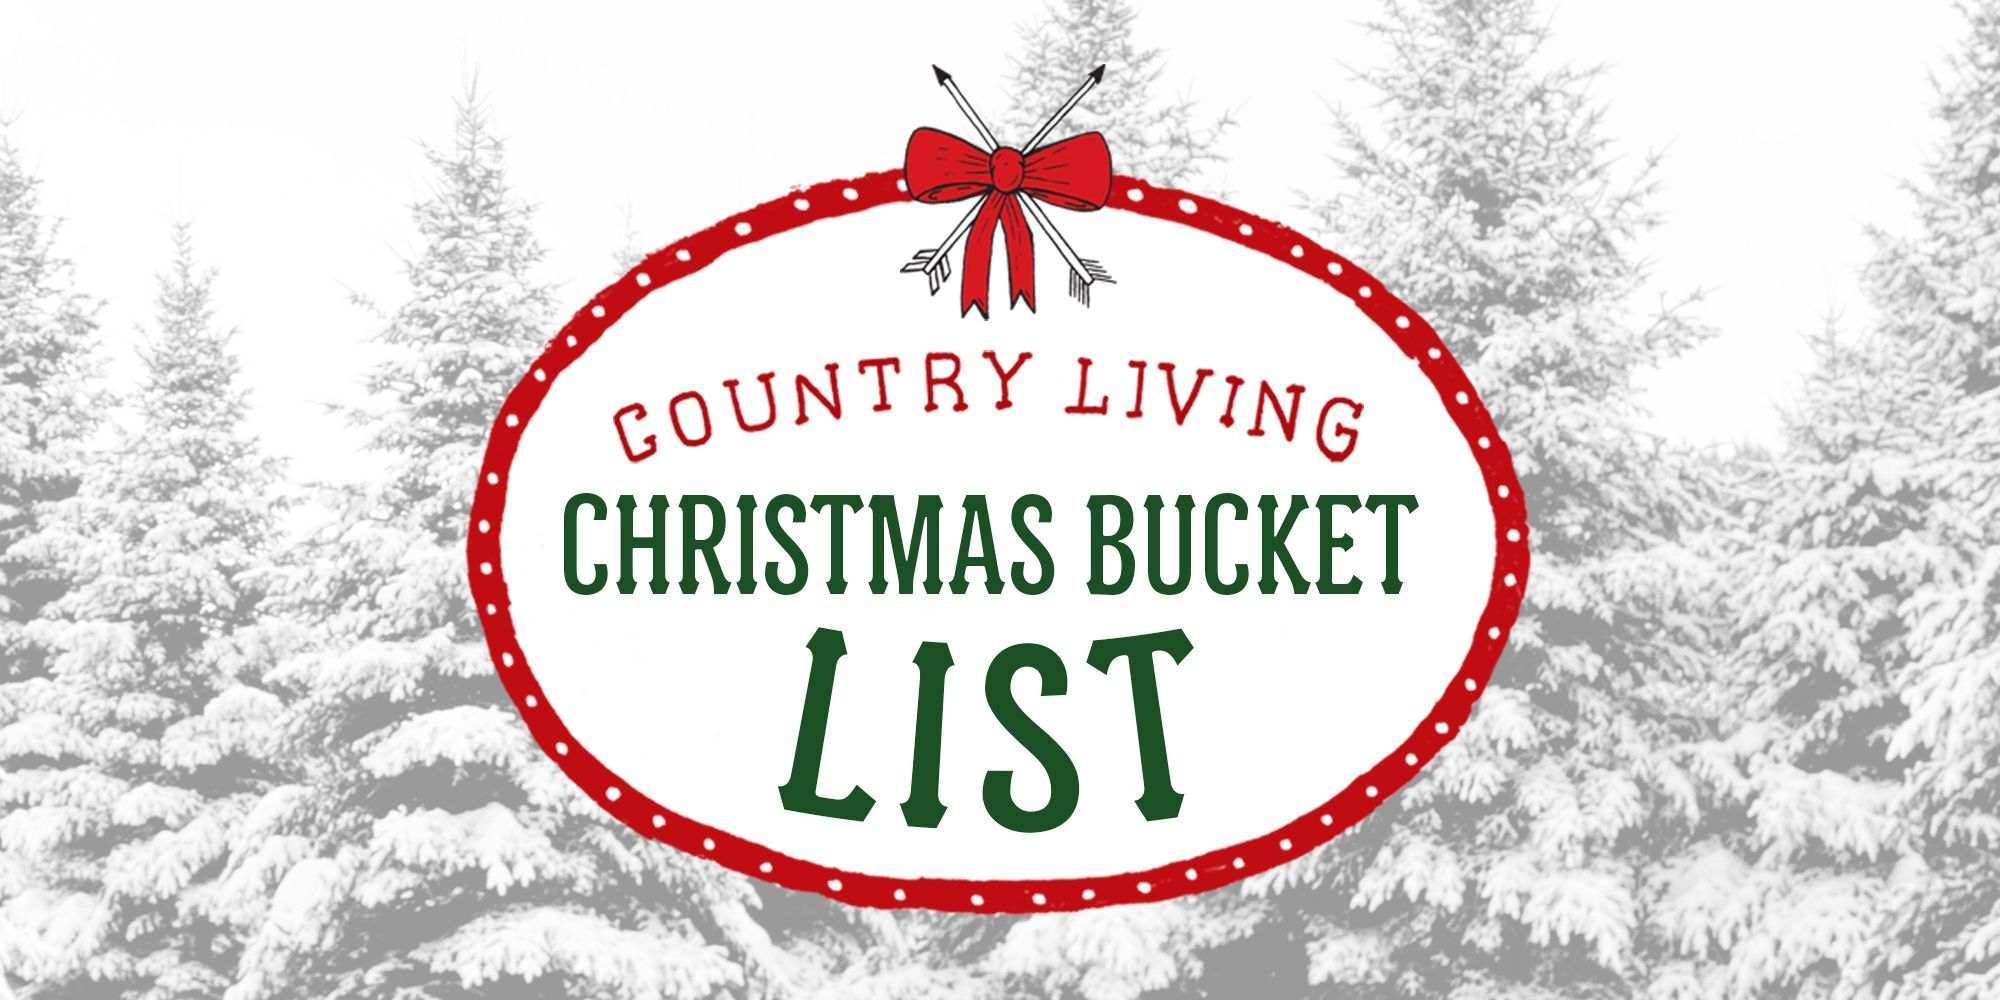 28 Fun Christmas Activities - Christmas Bucket List Ideas - Country ...